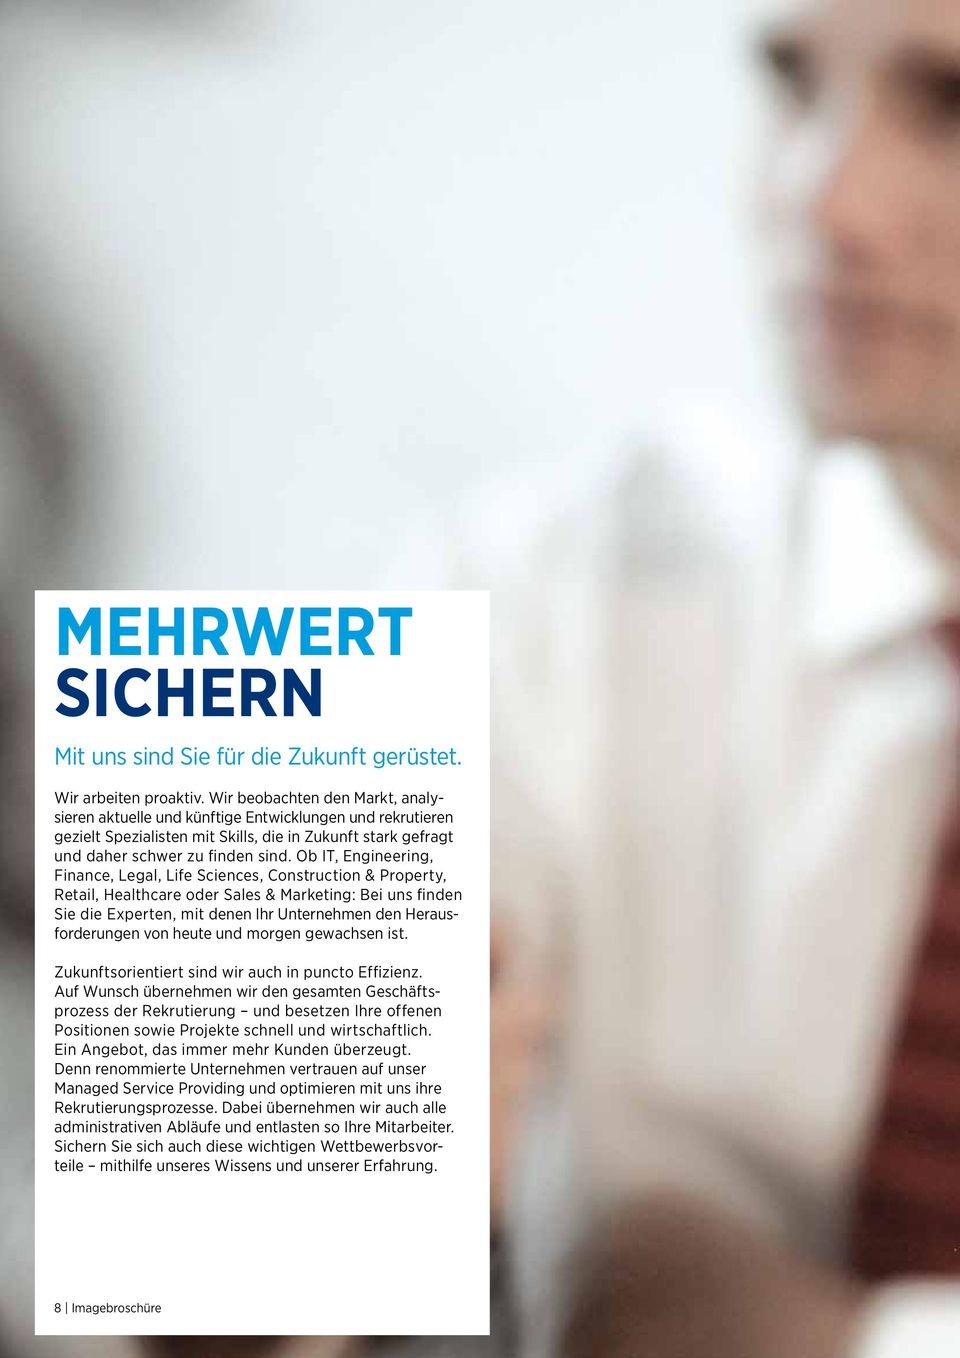 Ob IT, Engineering, Finance, Legal, Life Sciences, Construction & Property, Retail, Healthcare oder Sales & Marke ting: Bei uns finden Sie die Experten, mit denen Ihr Unternehmen den